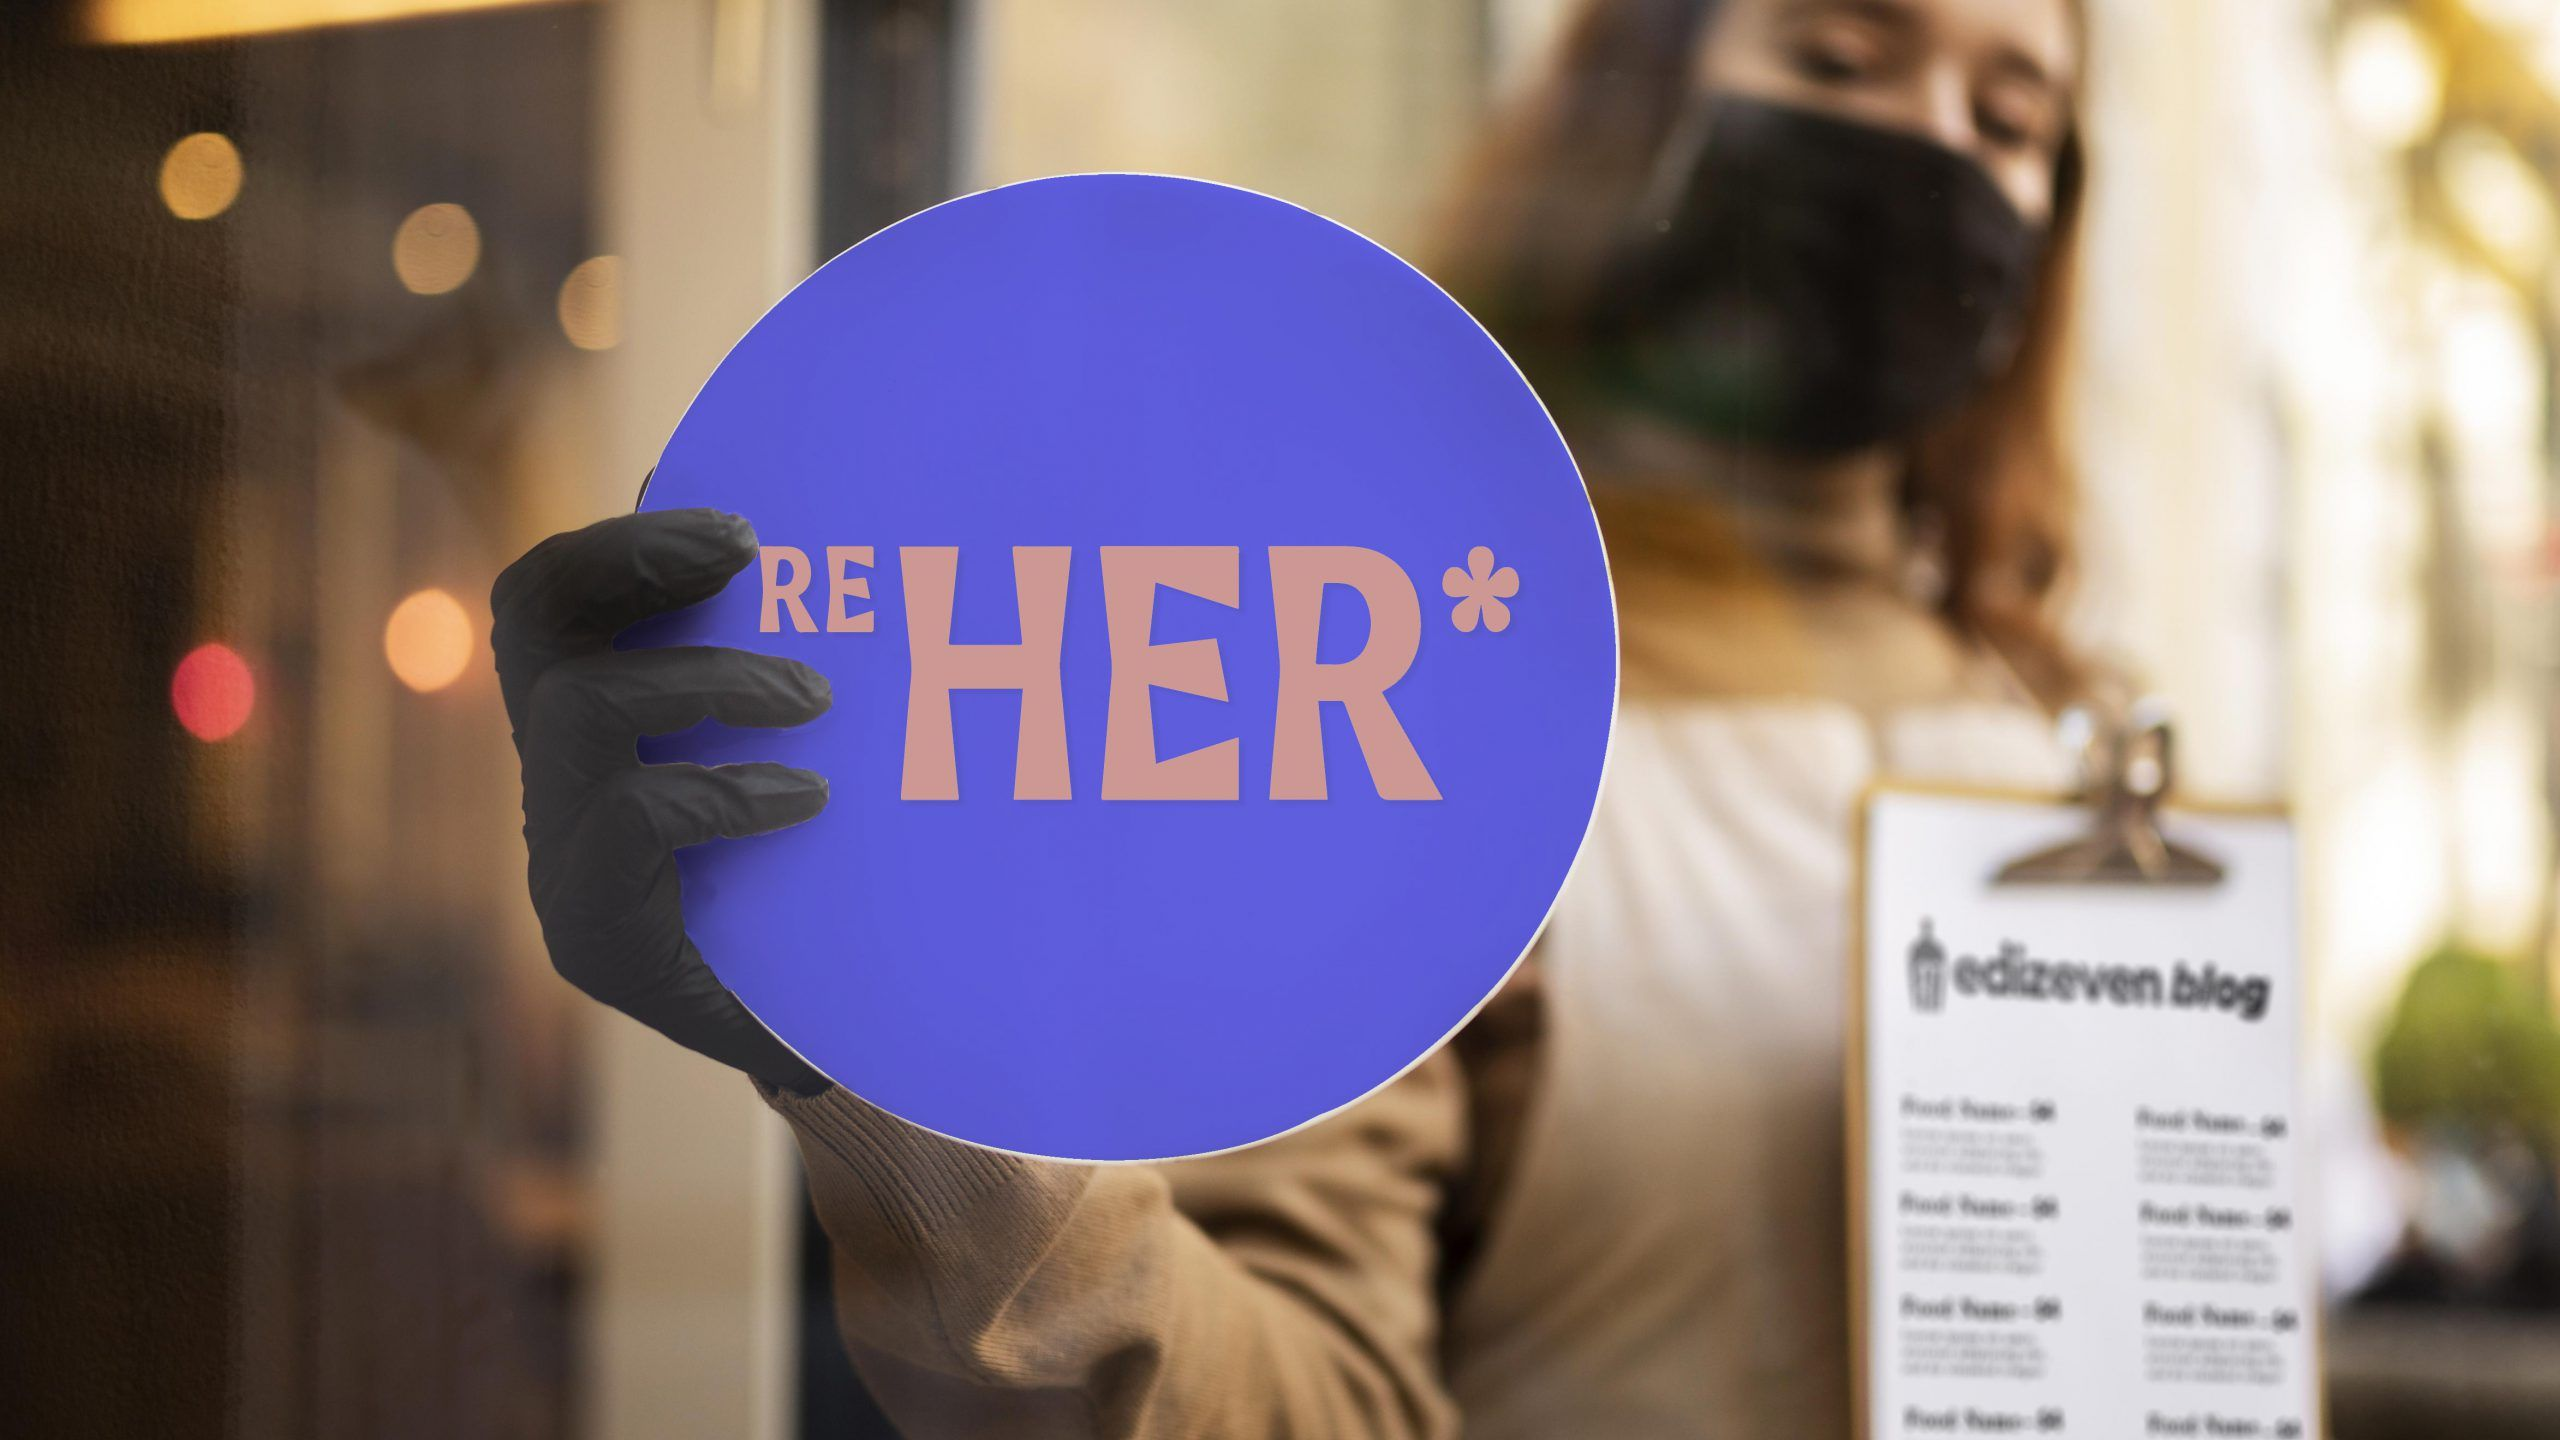 Re Her* logo